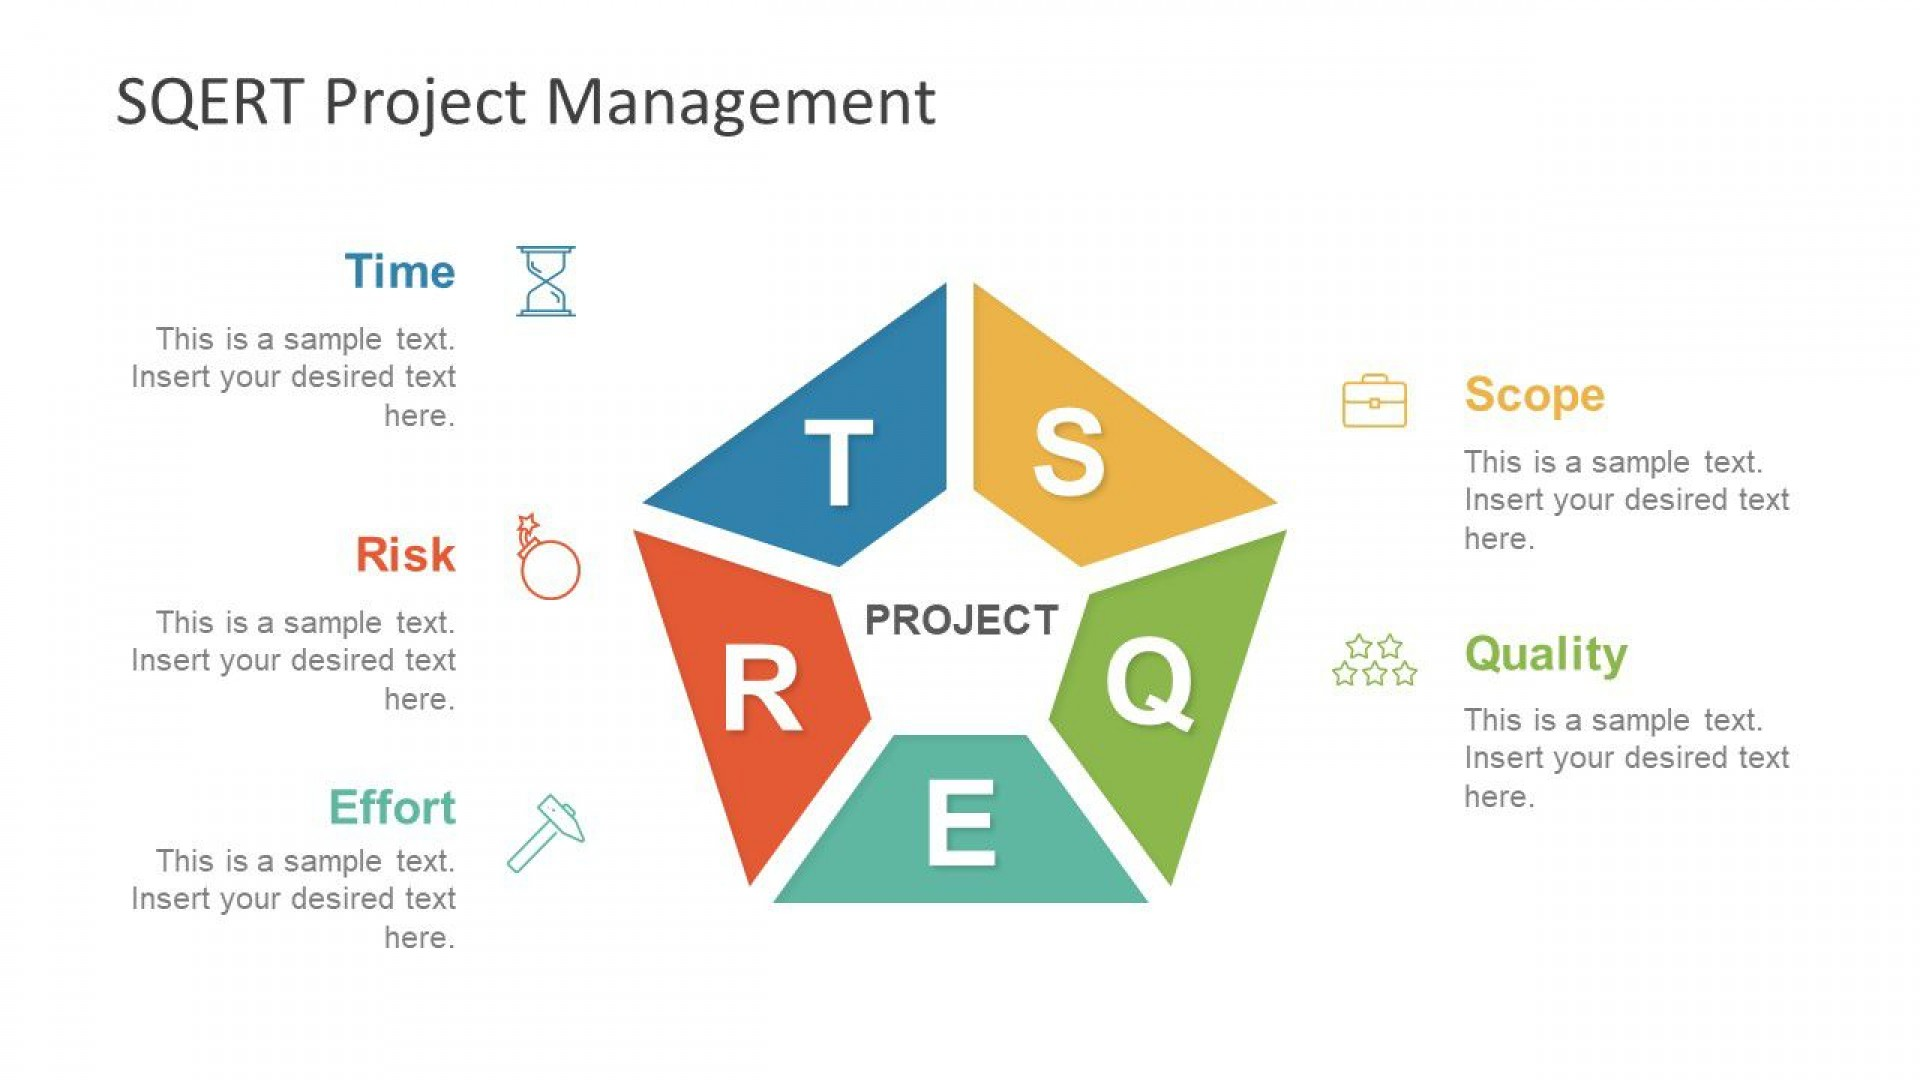 001 Phenomenal Project Management Powerpoint Template Free Download Example  Sqert Dashboard1920